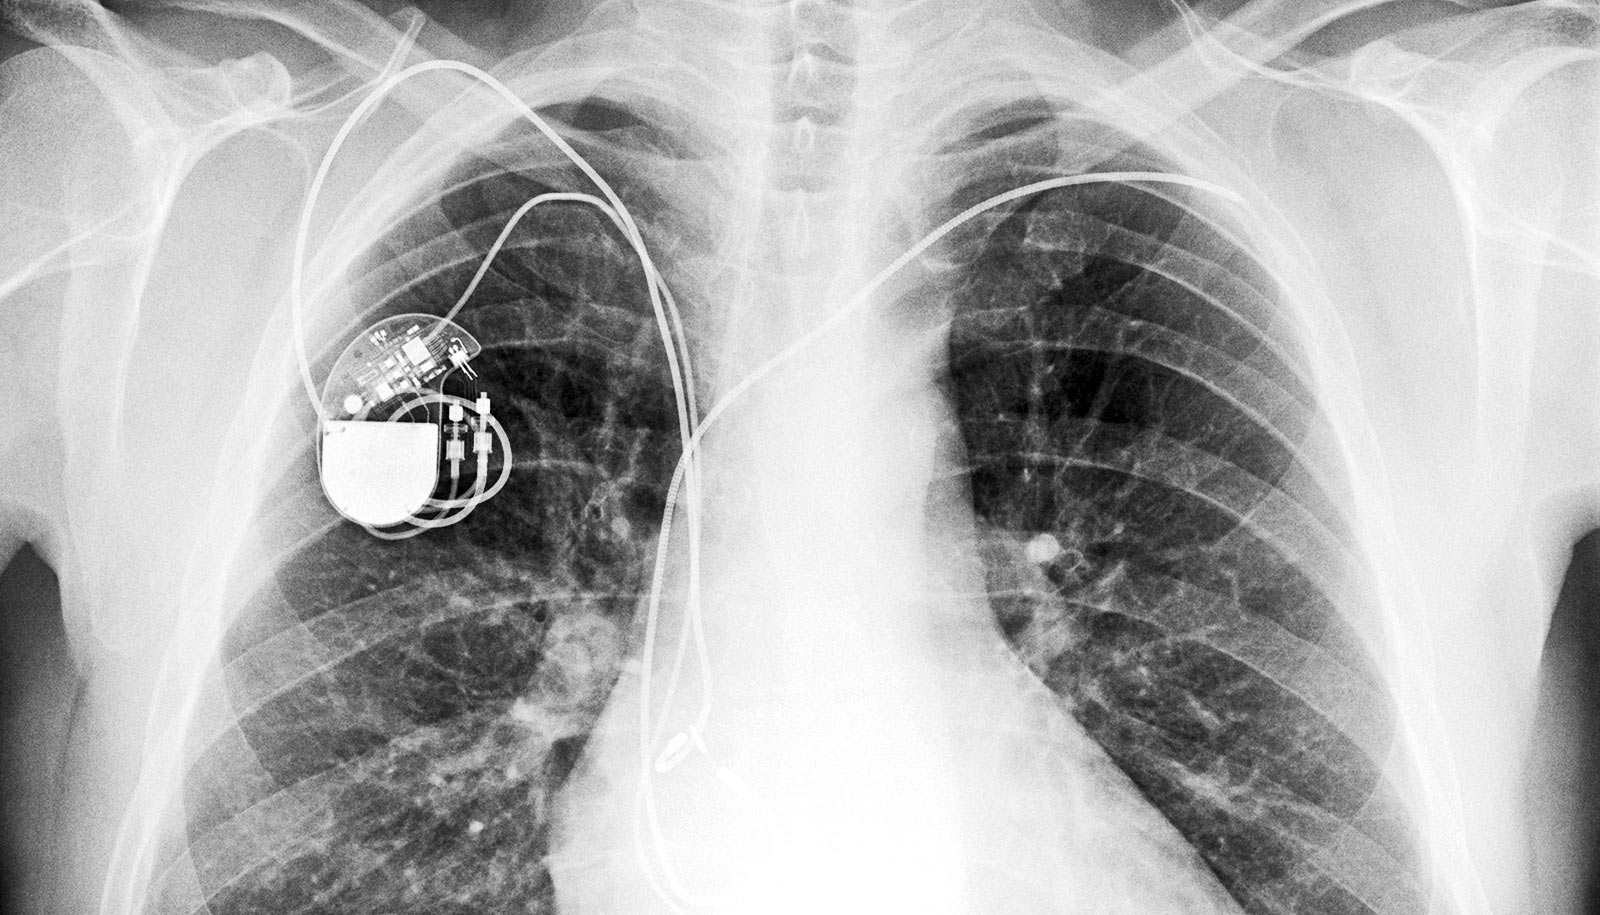 How does a pacemaker help?